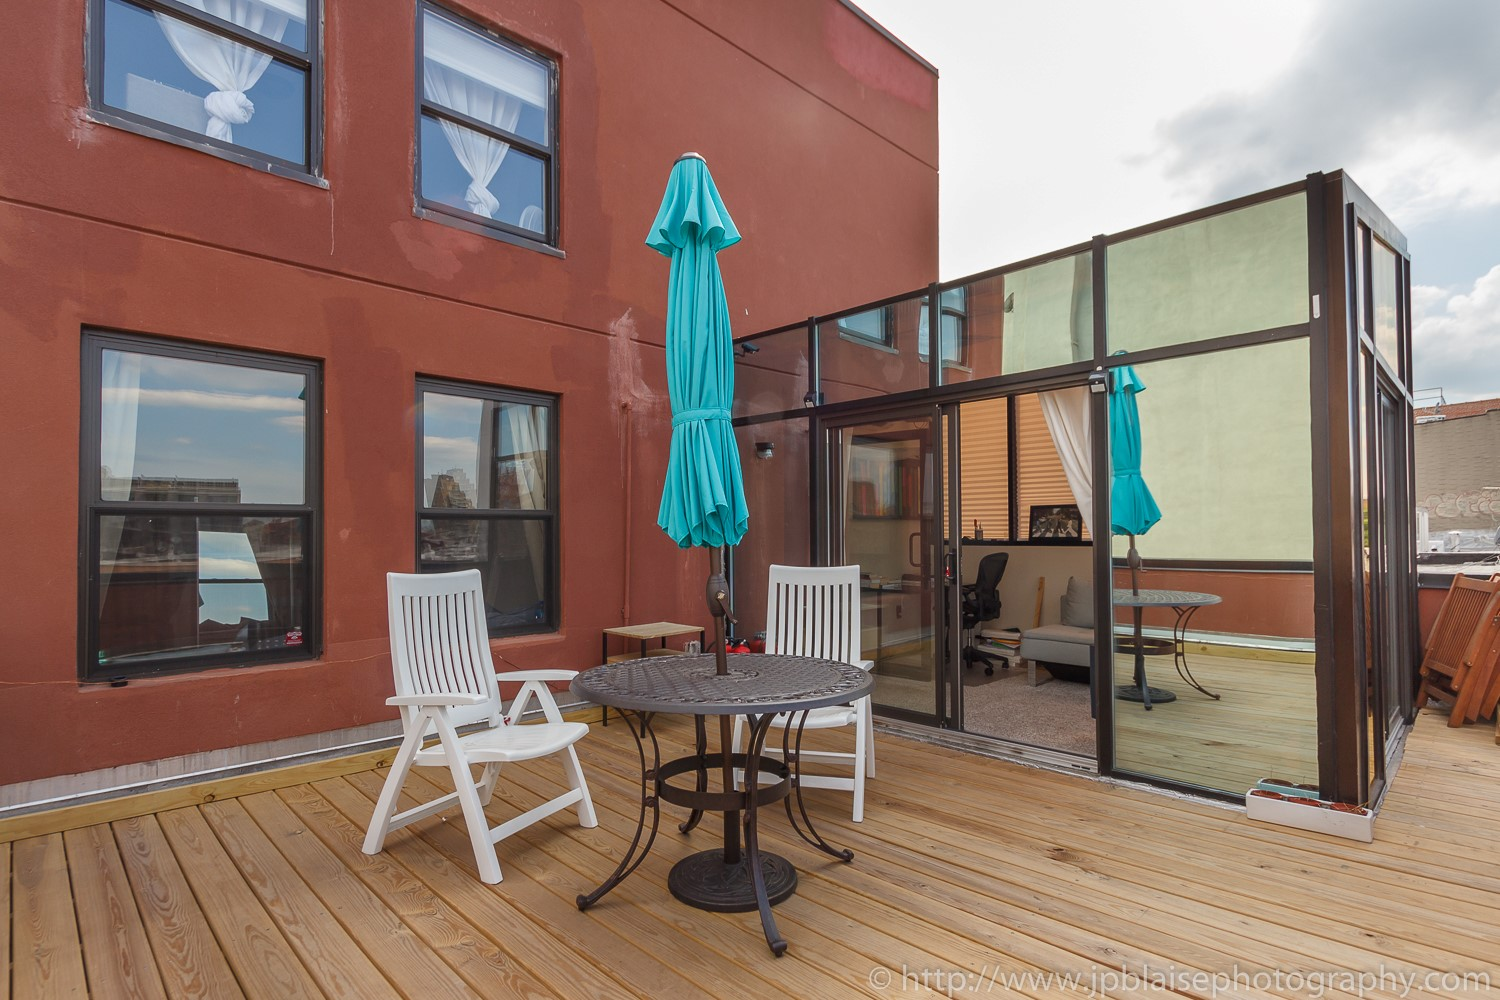 Real Estate photography Terrace one bedroom apartment in Williamsburg Brooklyn New York